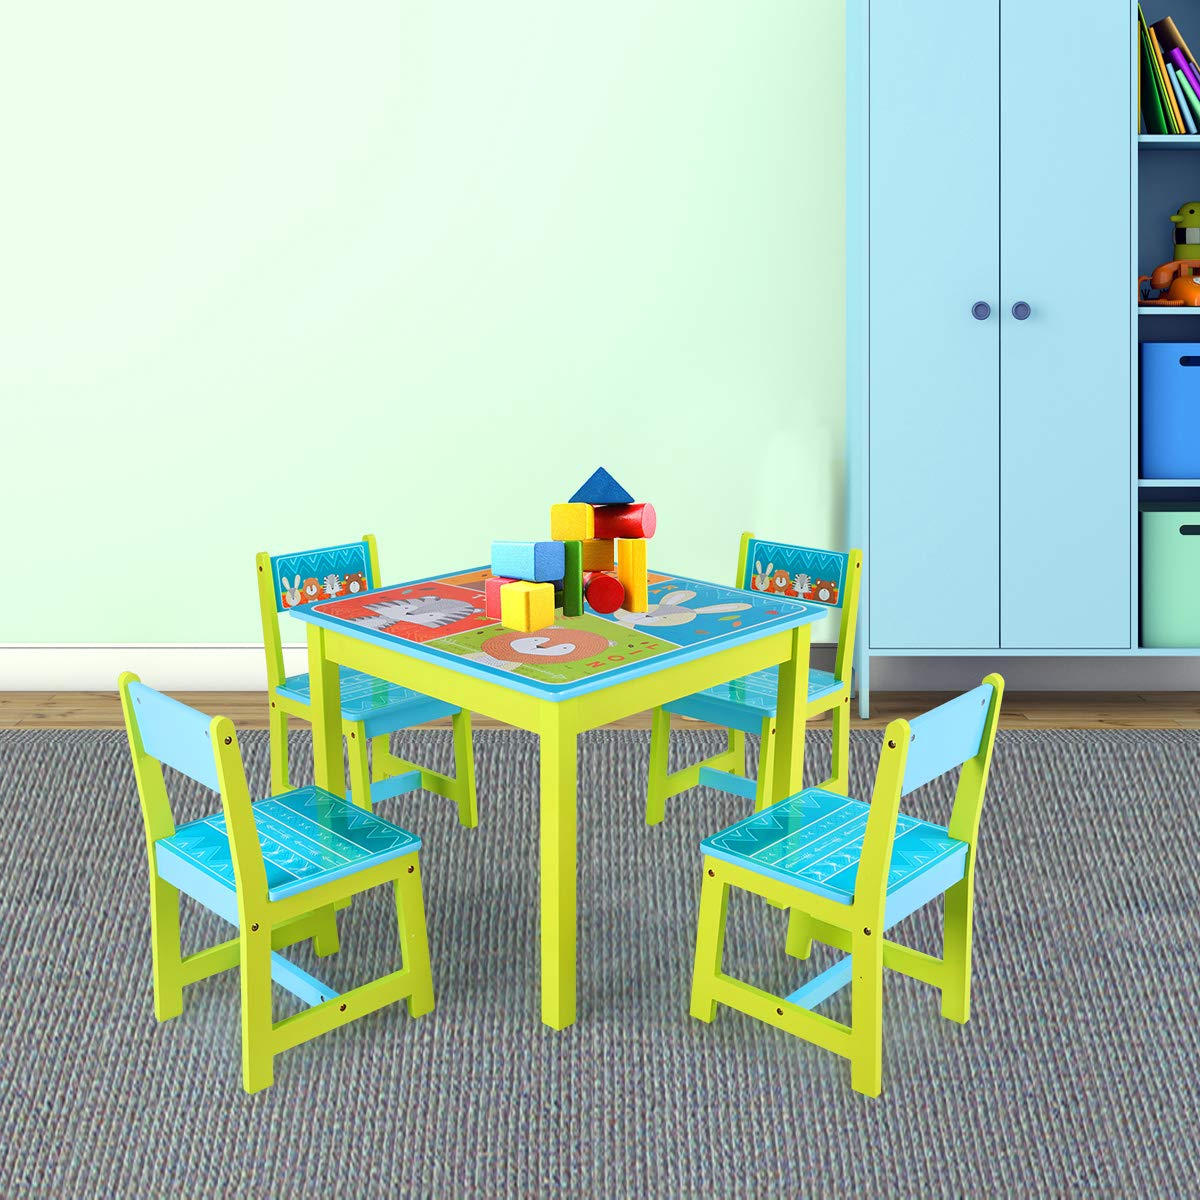 BABY JOY Kids Table and 4 Chairs Set, Wooden MDF Desk for Studying Playing Dining Indoors & Outdoors Activity, Toddler Baby Gift Desk Furniture Cartoon Pattern (Table and 4 Chairs) by BABY JOY (Image #7)